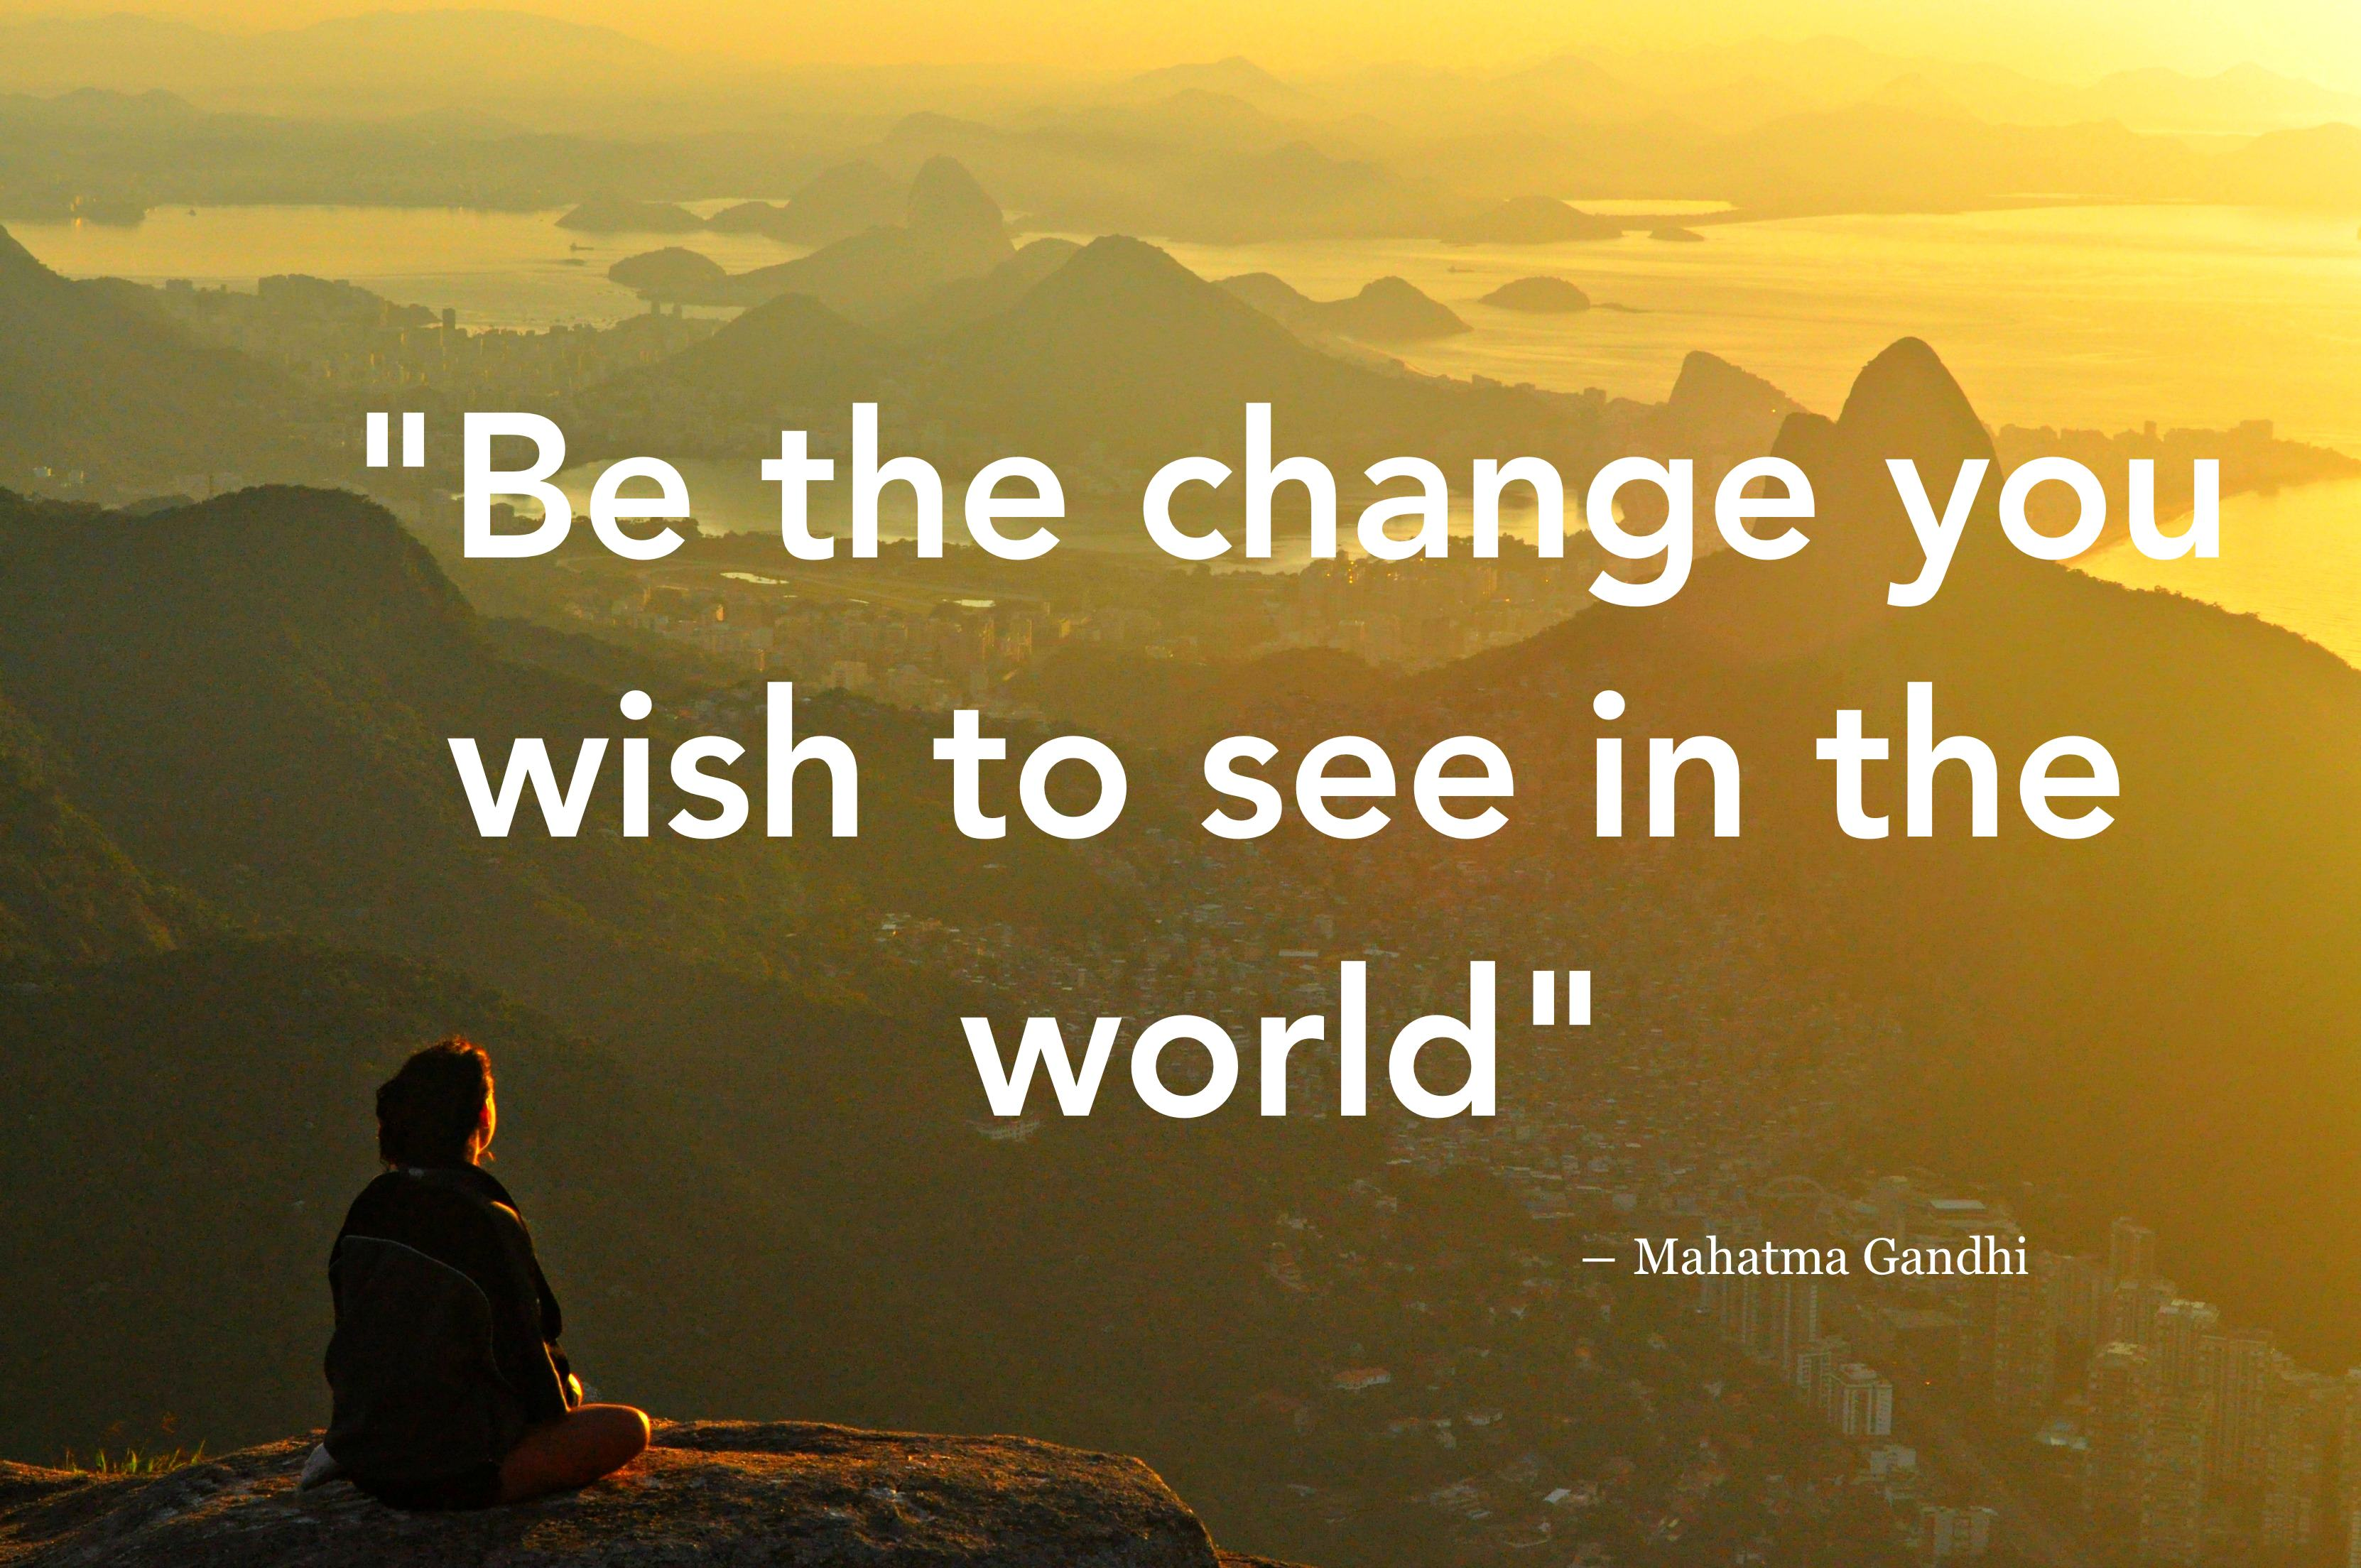 """If I Can Change the World"" Essays: Complete Guide and 15 Brilliant Ideas"